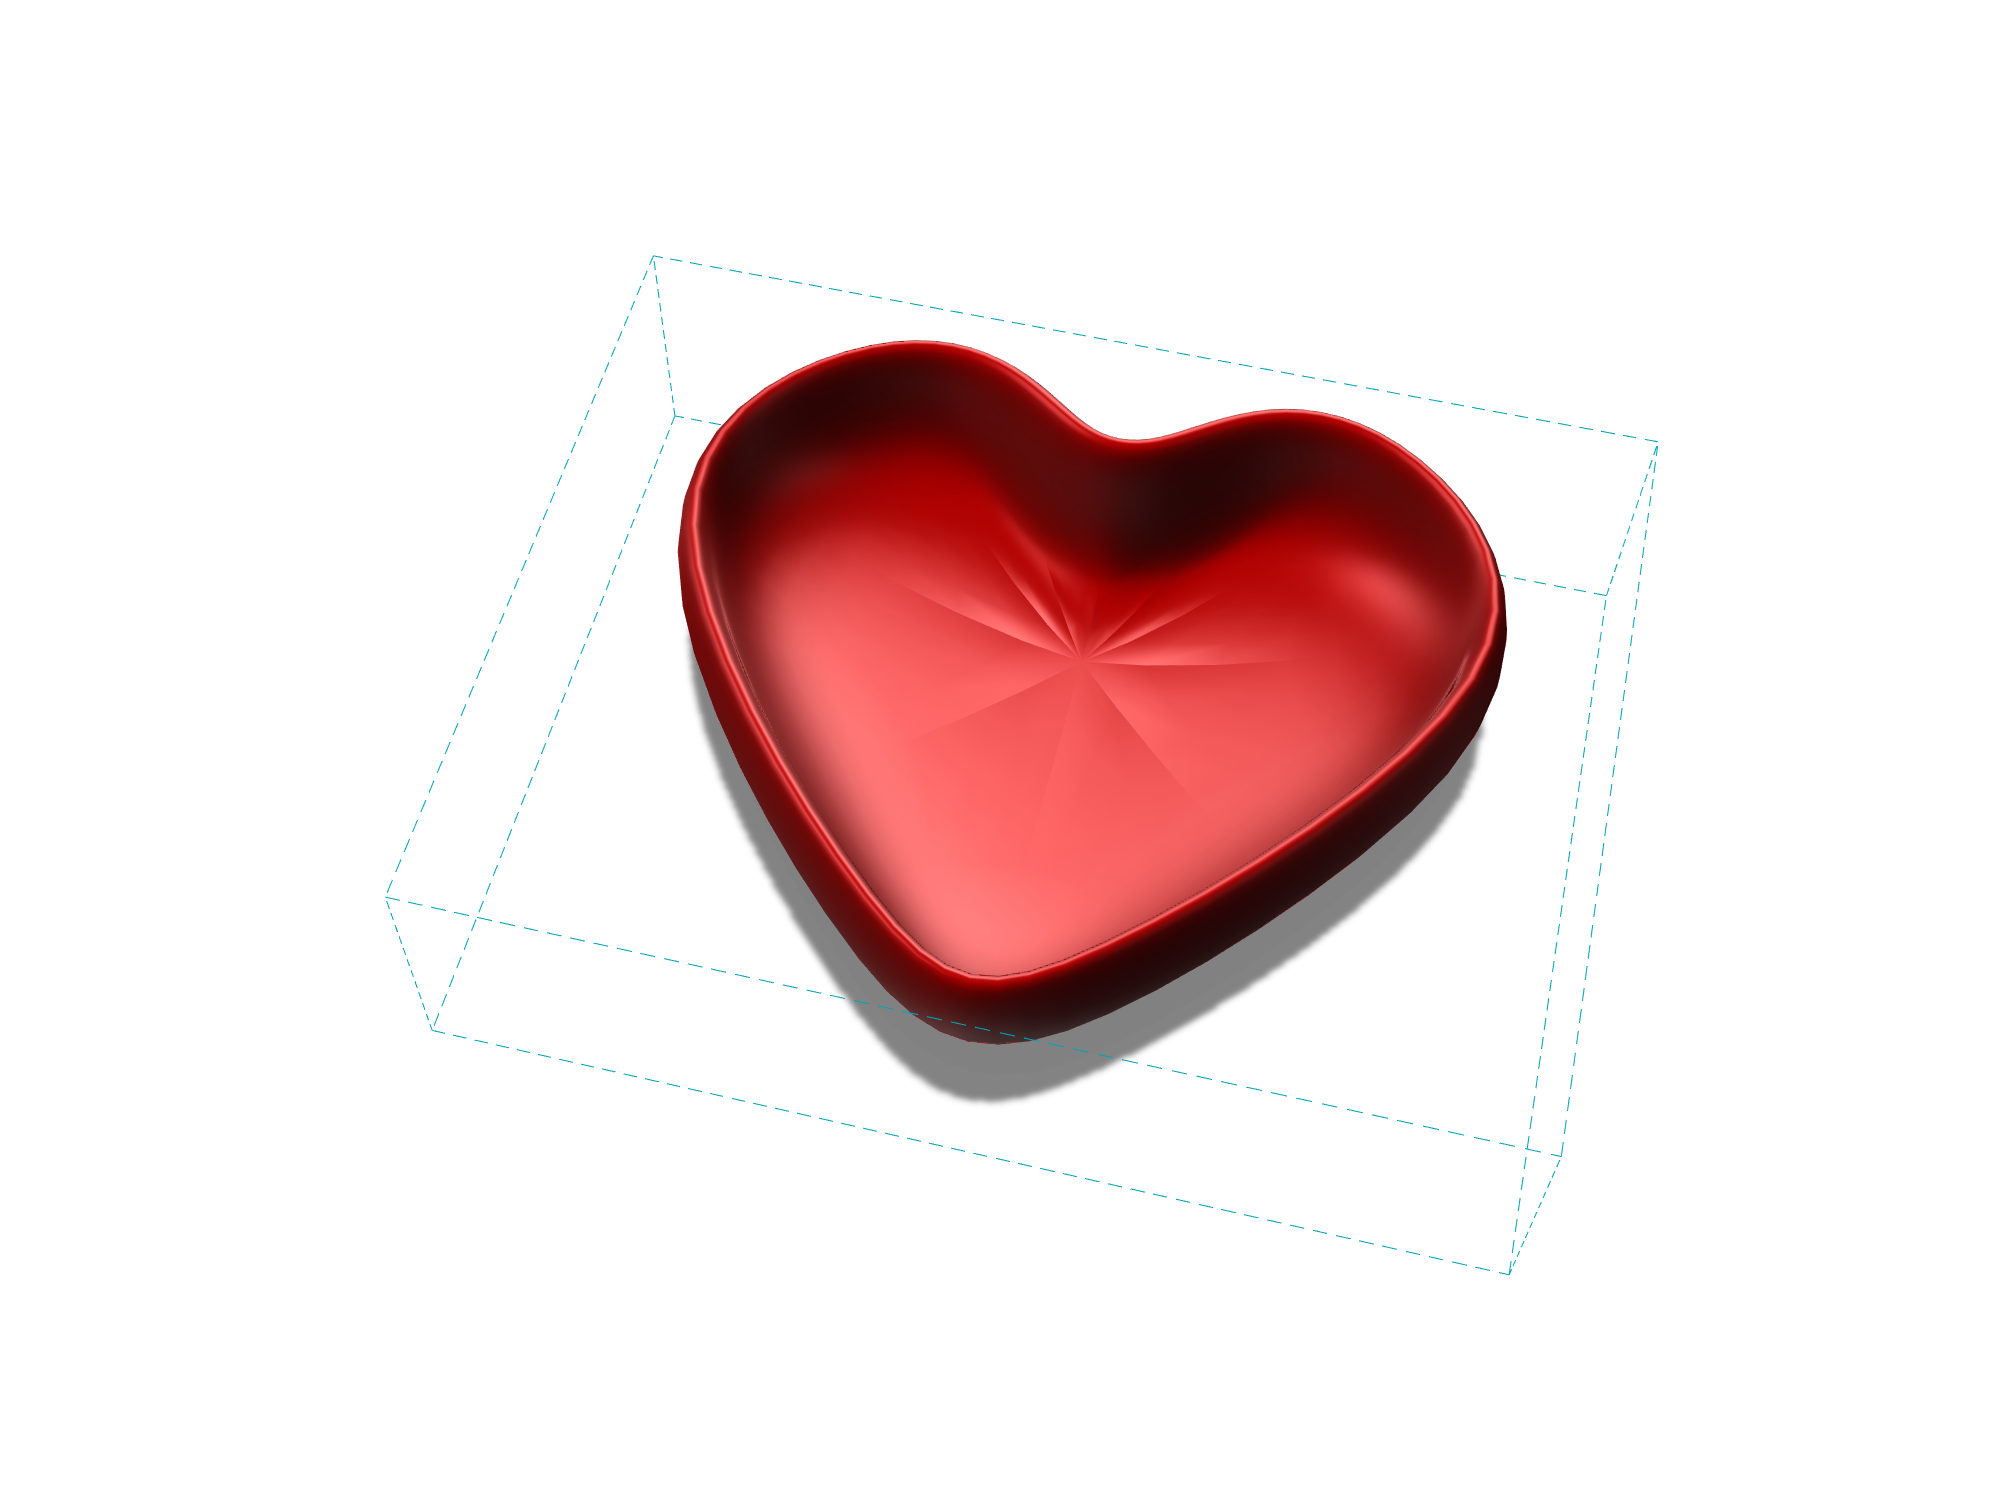 Heart bowl - 3D design by Ngan Vu Mar 3, 2018